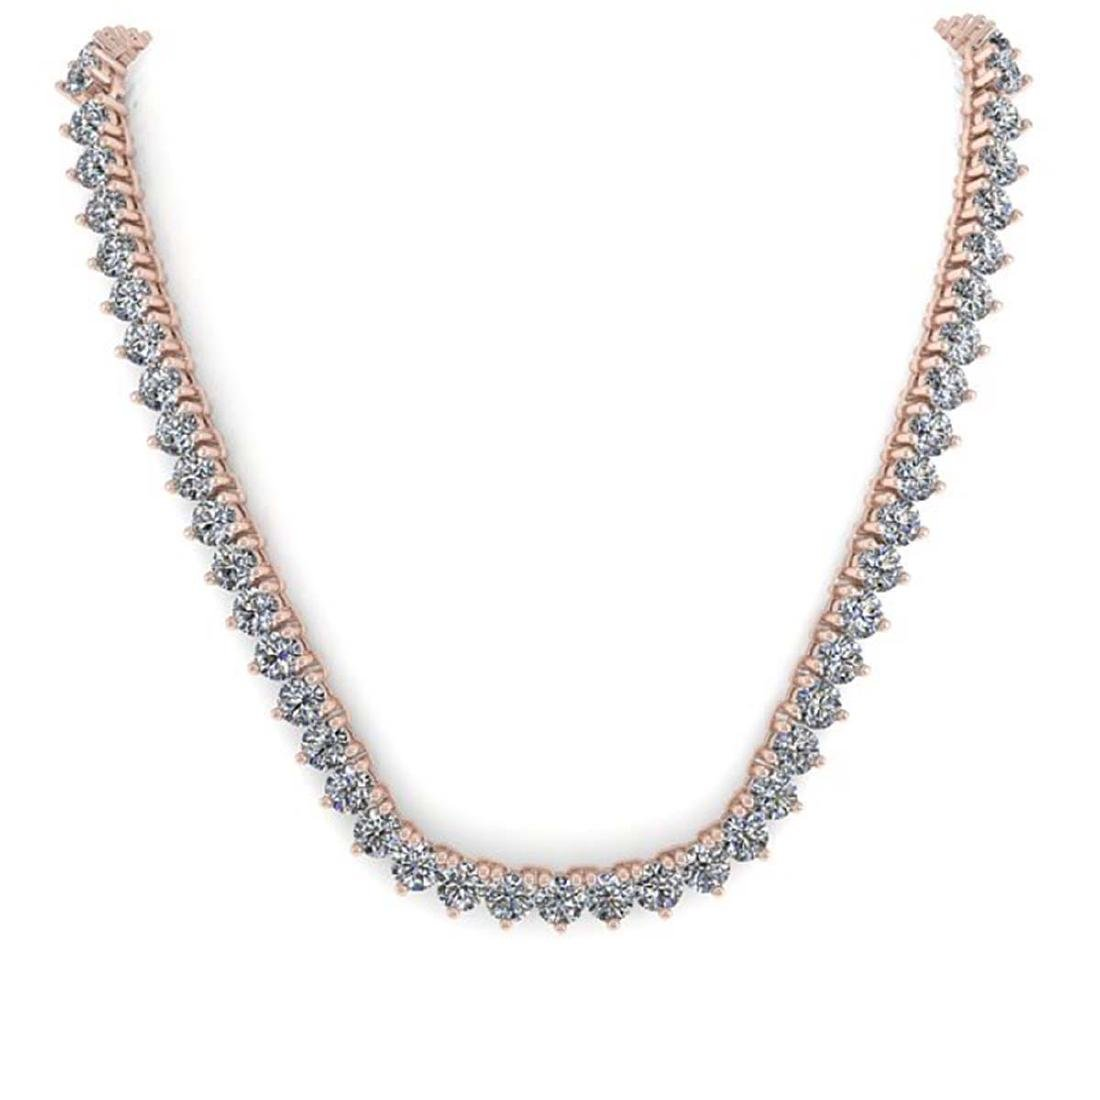 54 CTW Solitaire Certified SI Diamond Necklace 14K Rose - 3